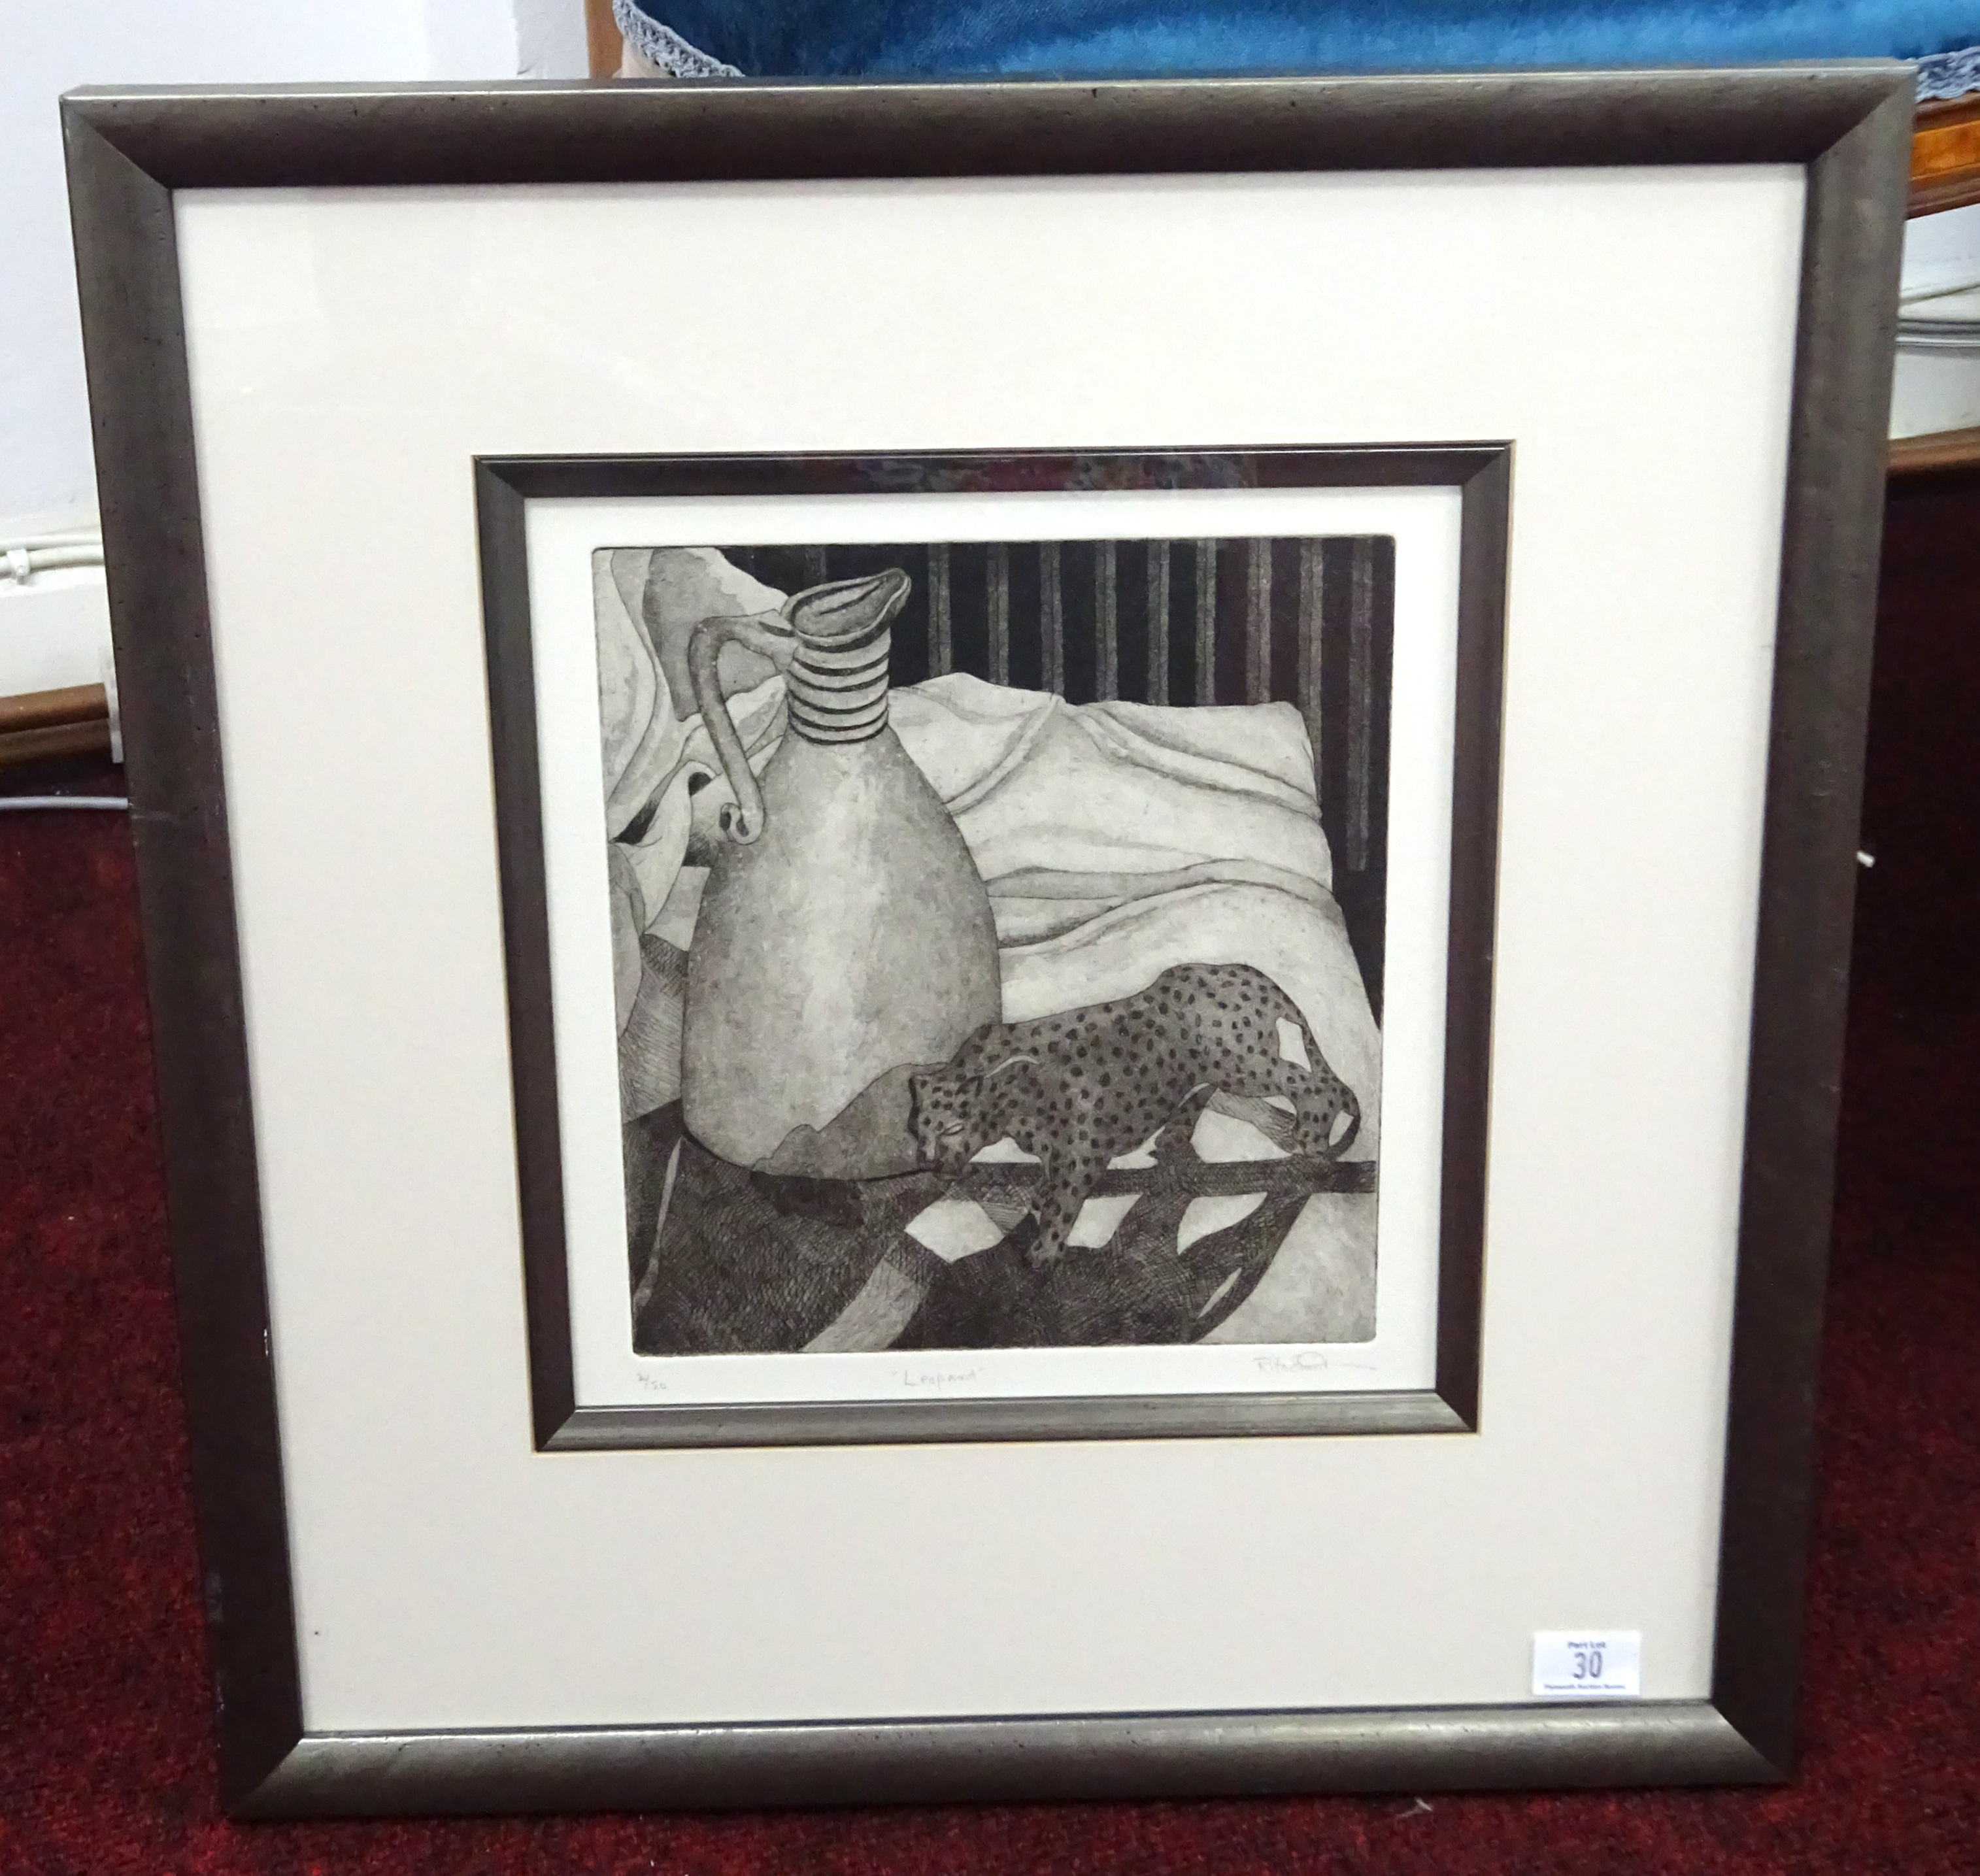 Lot 030 - Rita Smith (contemporary artist based in Plymouth) two signed etchings, 'Measures' and 'Leopard',